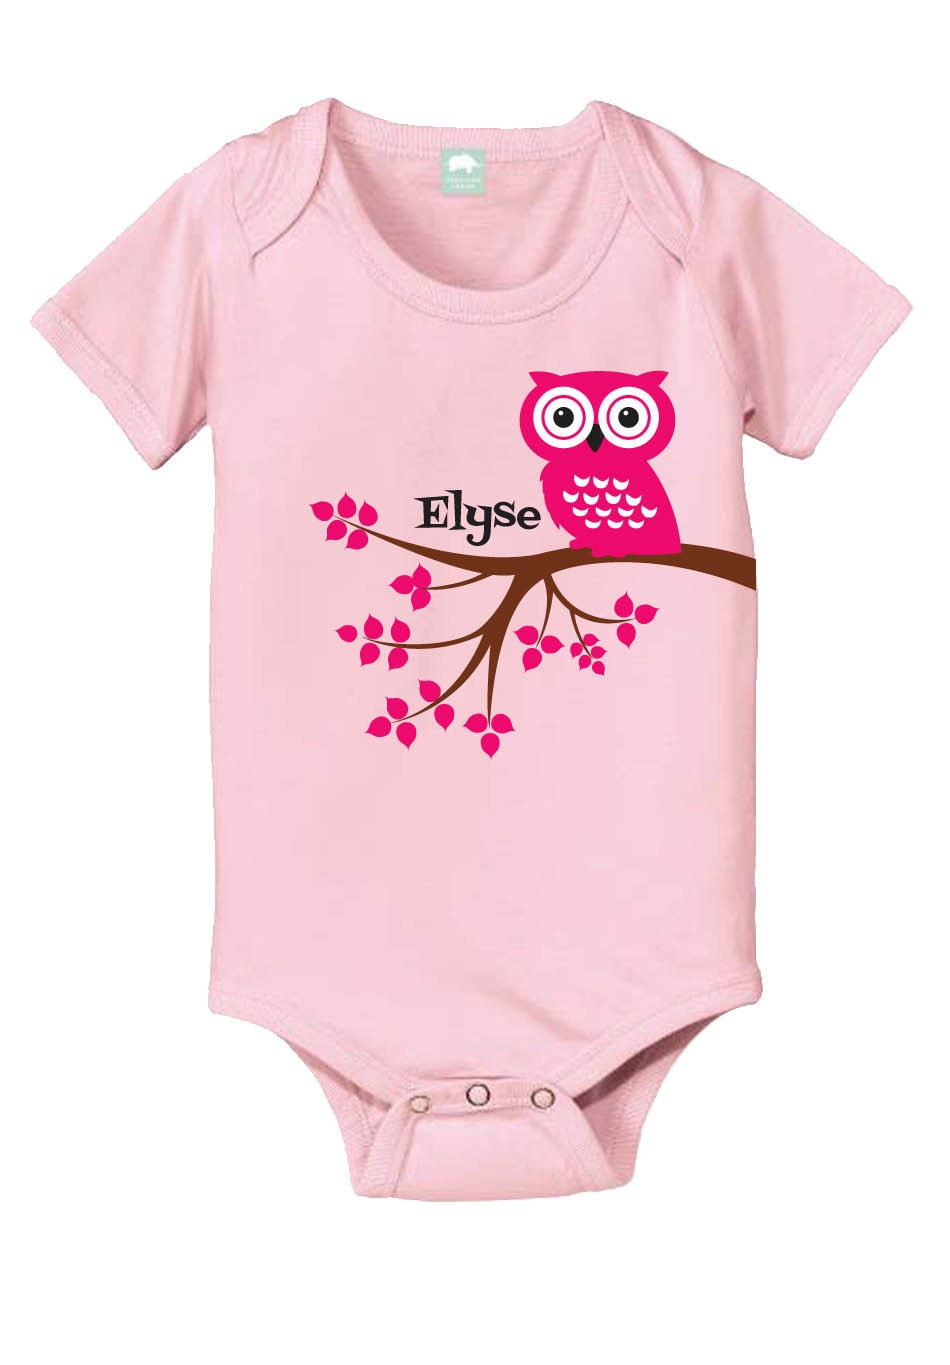 Cute baby clothes with sayings